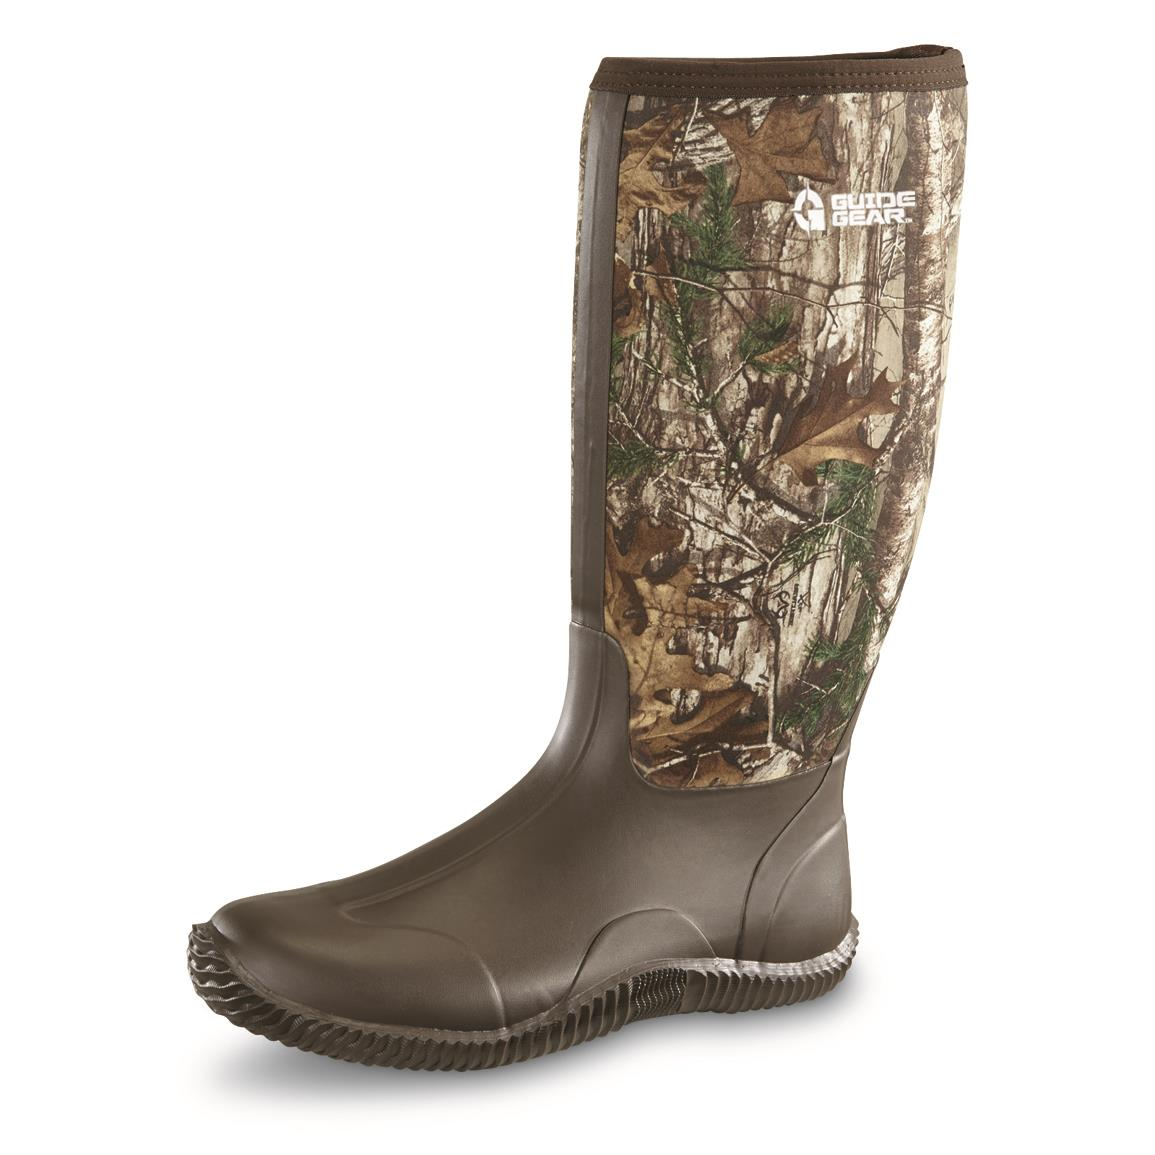 Guide Gear Men's High Camo Waterproof Rubber Boots, Realtree Xtra